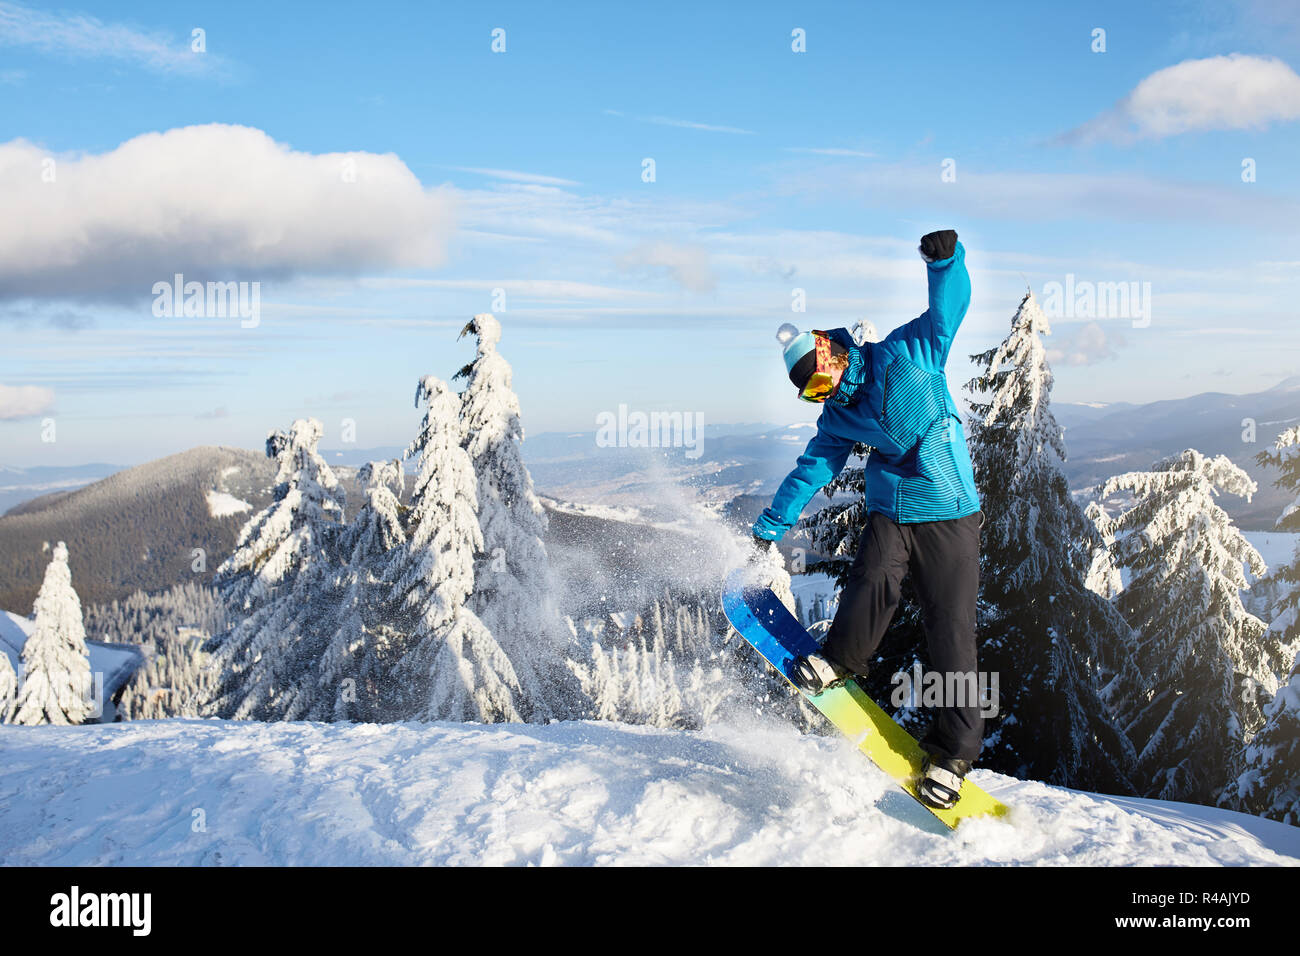 Snowboarder doing tricks at ski resort. Rider performing jump with his snowboard near forest on backcountry freeride or freestyle session in colorful fashionable outfit. Copyspace area. Powder in air. - Stock Image